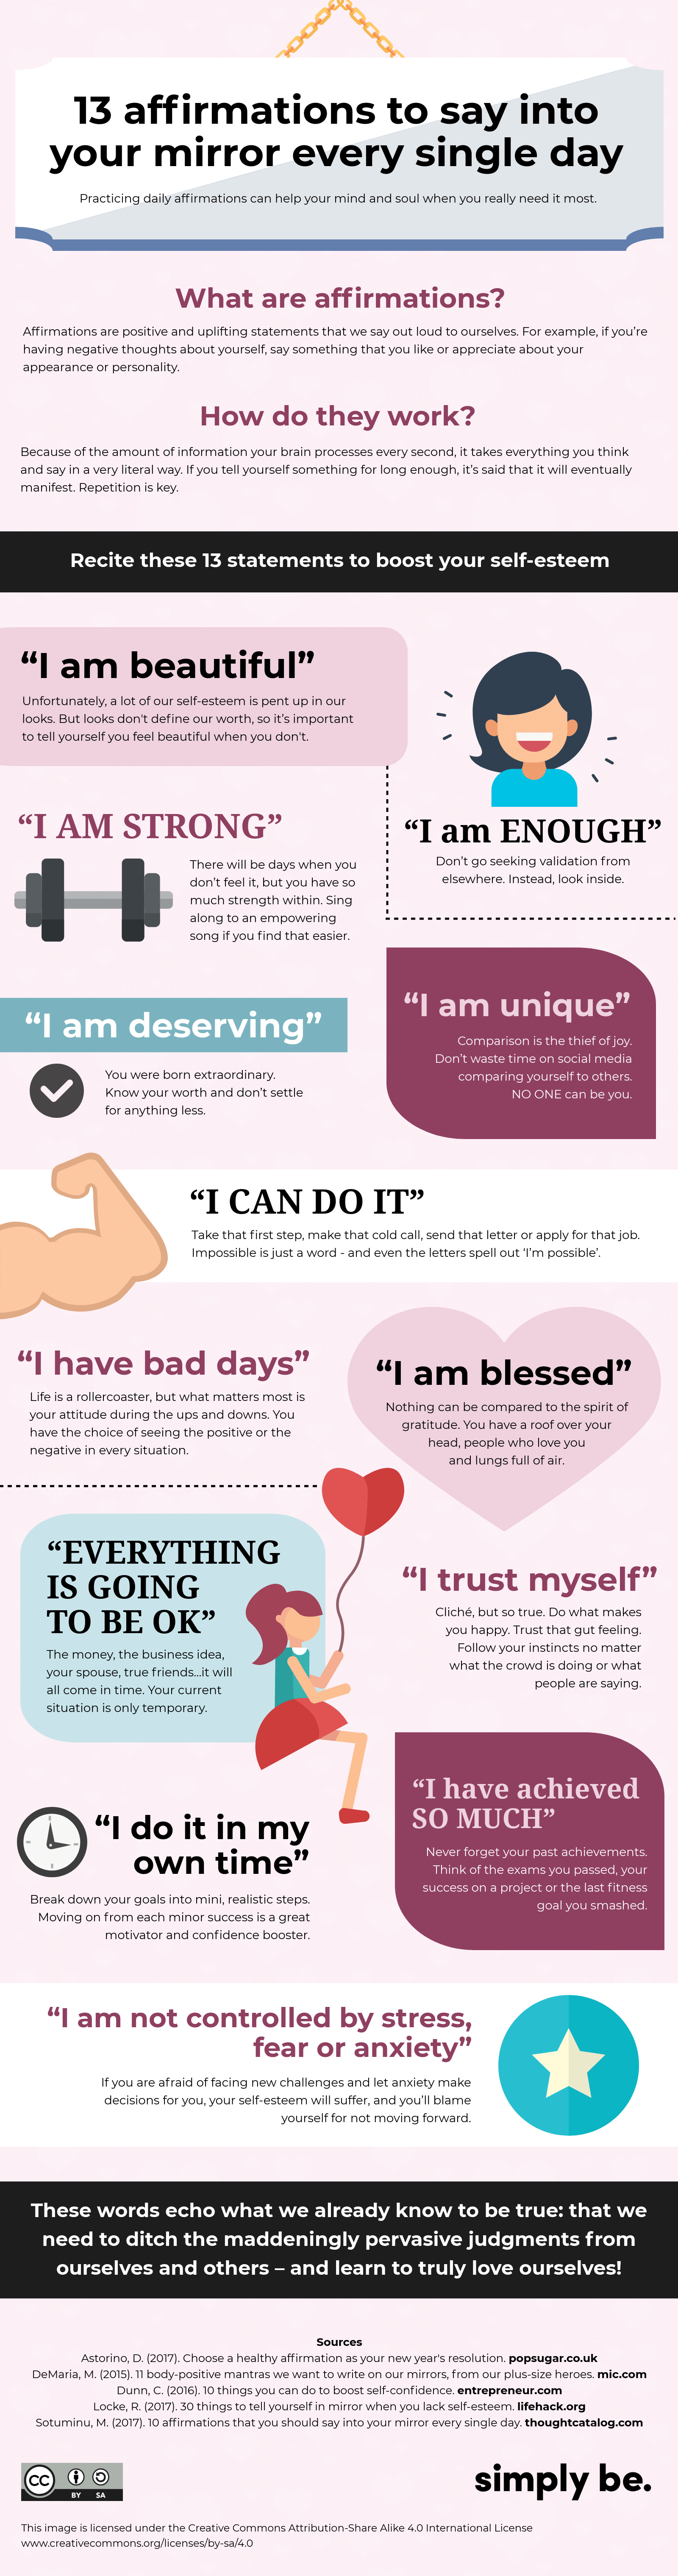 13 powerful affirmations to boost your self-esteem